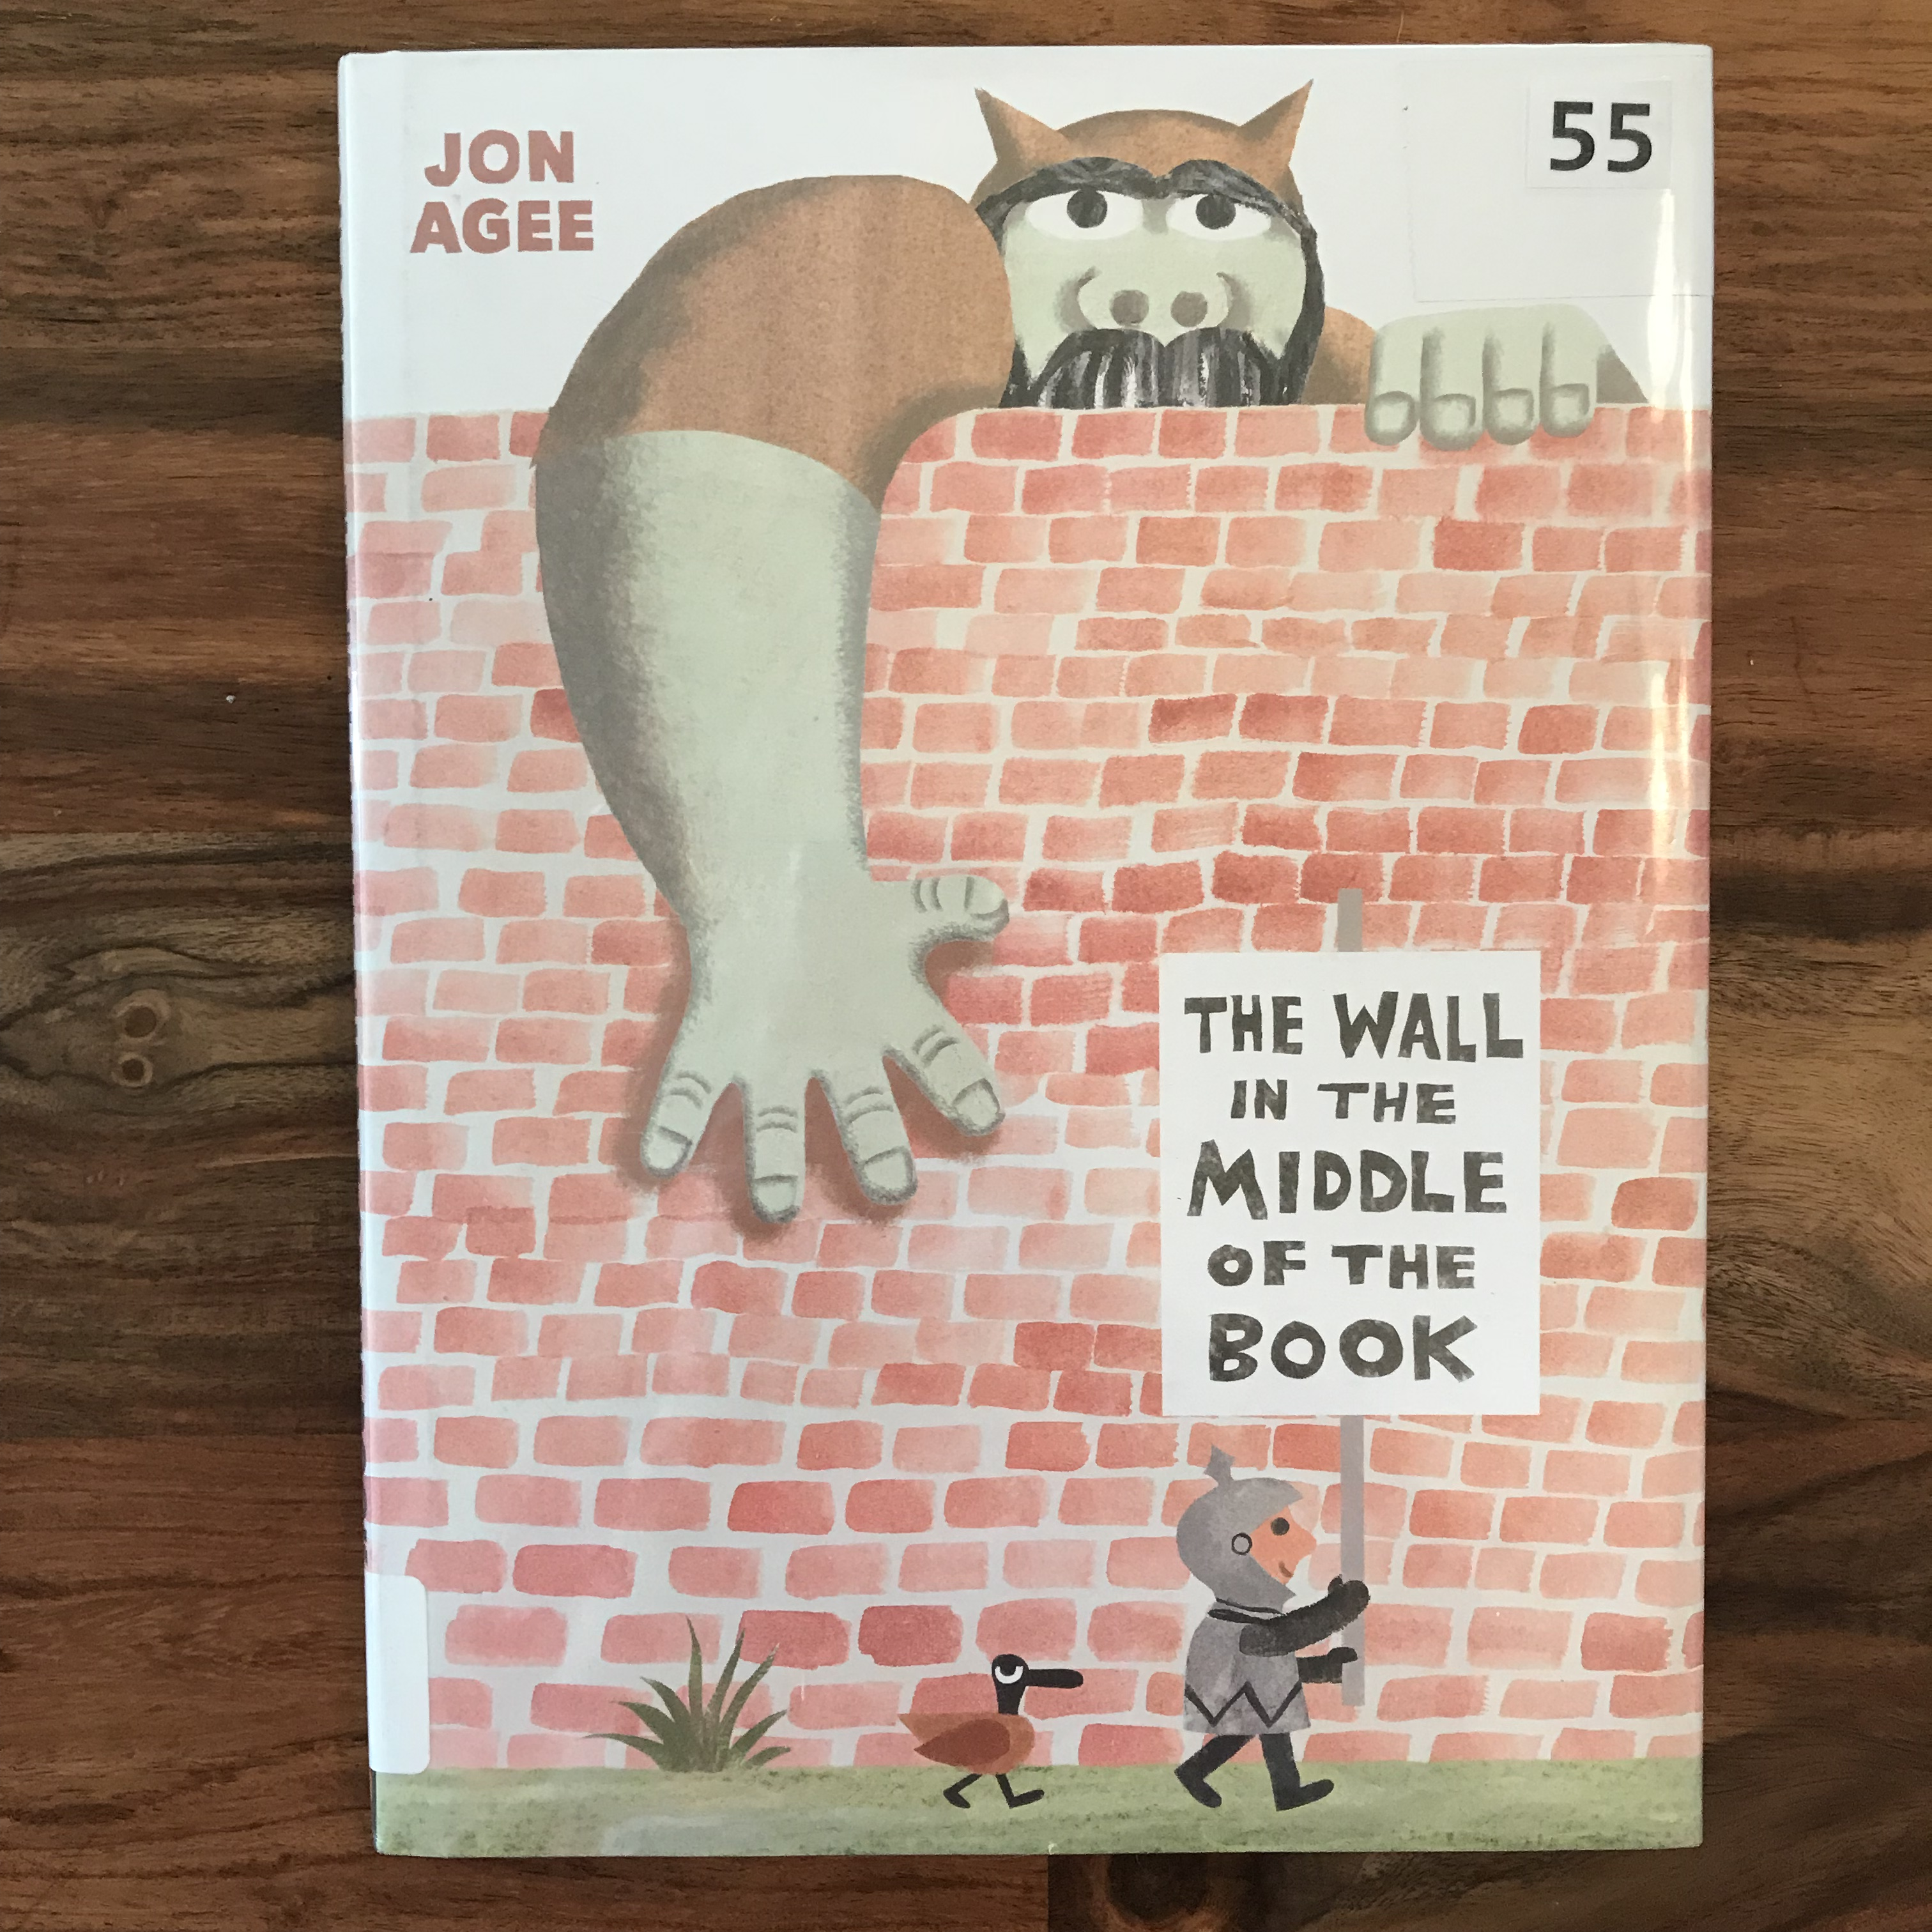 "The cover of ""The Wall in the Middle of the Book"" shows a knight standing on one side of a brick wall holding a sign with the title of the book. Behind the wall is an ogre who is reaching a large hand over the top of the wall."